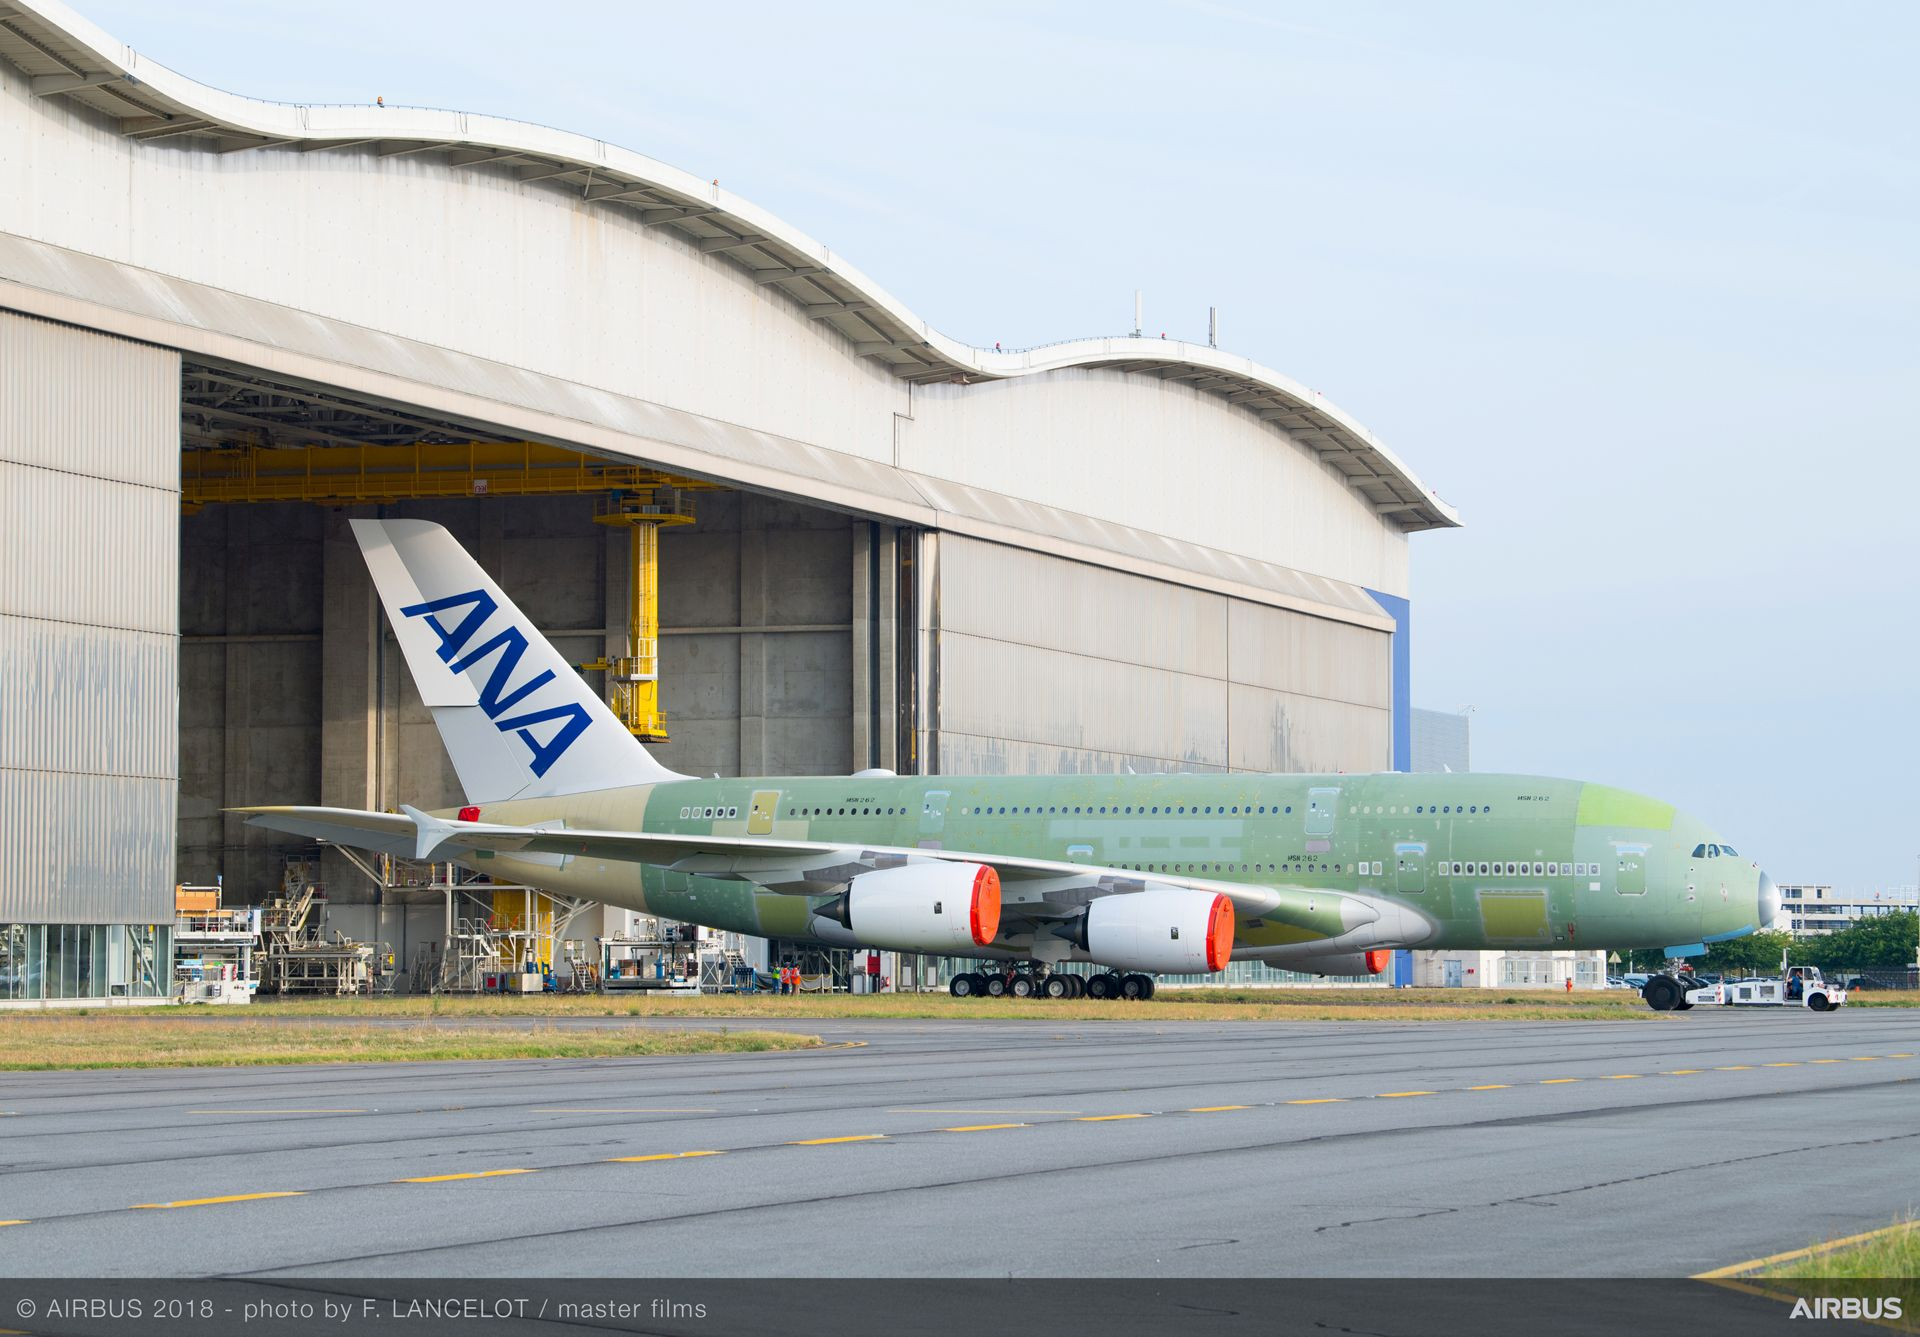 Final assembly complete for All Nippon Airways' first A380